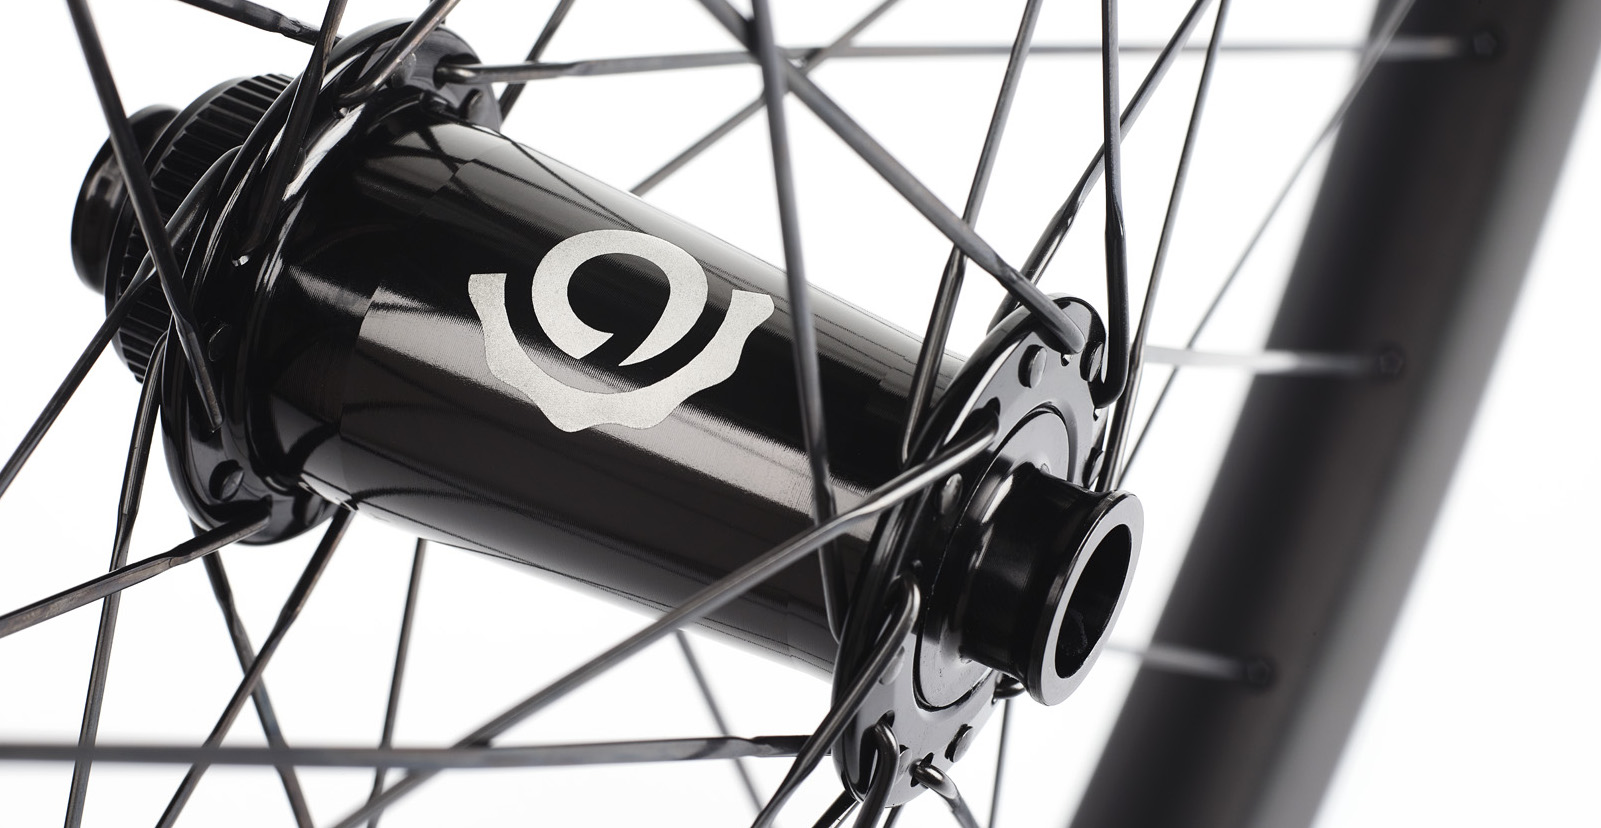 The carbon wheels now come with made-in-USA Industry Nine Torch Hubs that feature a 60-tooth ratchet with 6 out of phase pawls.